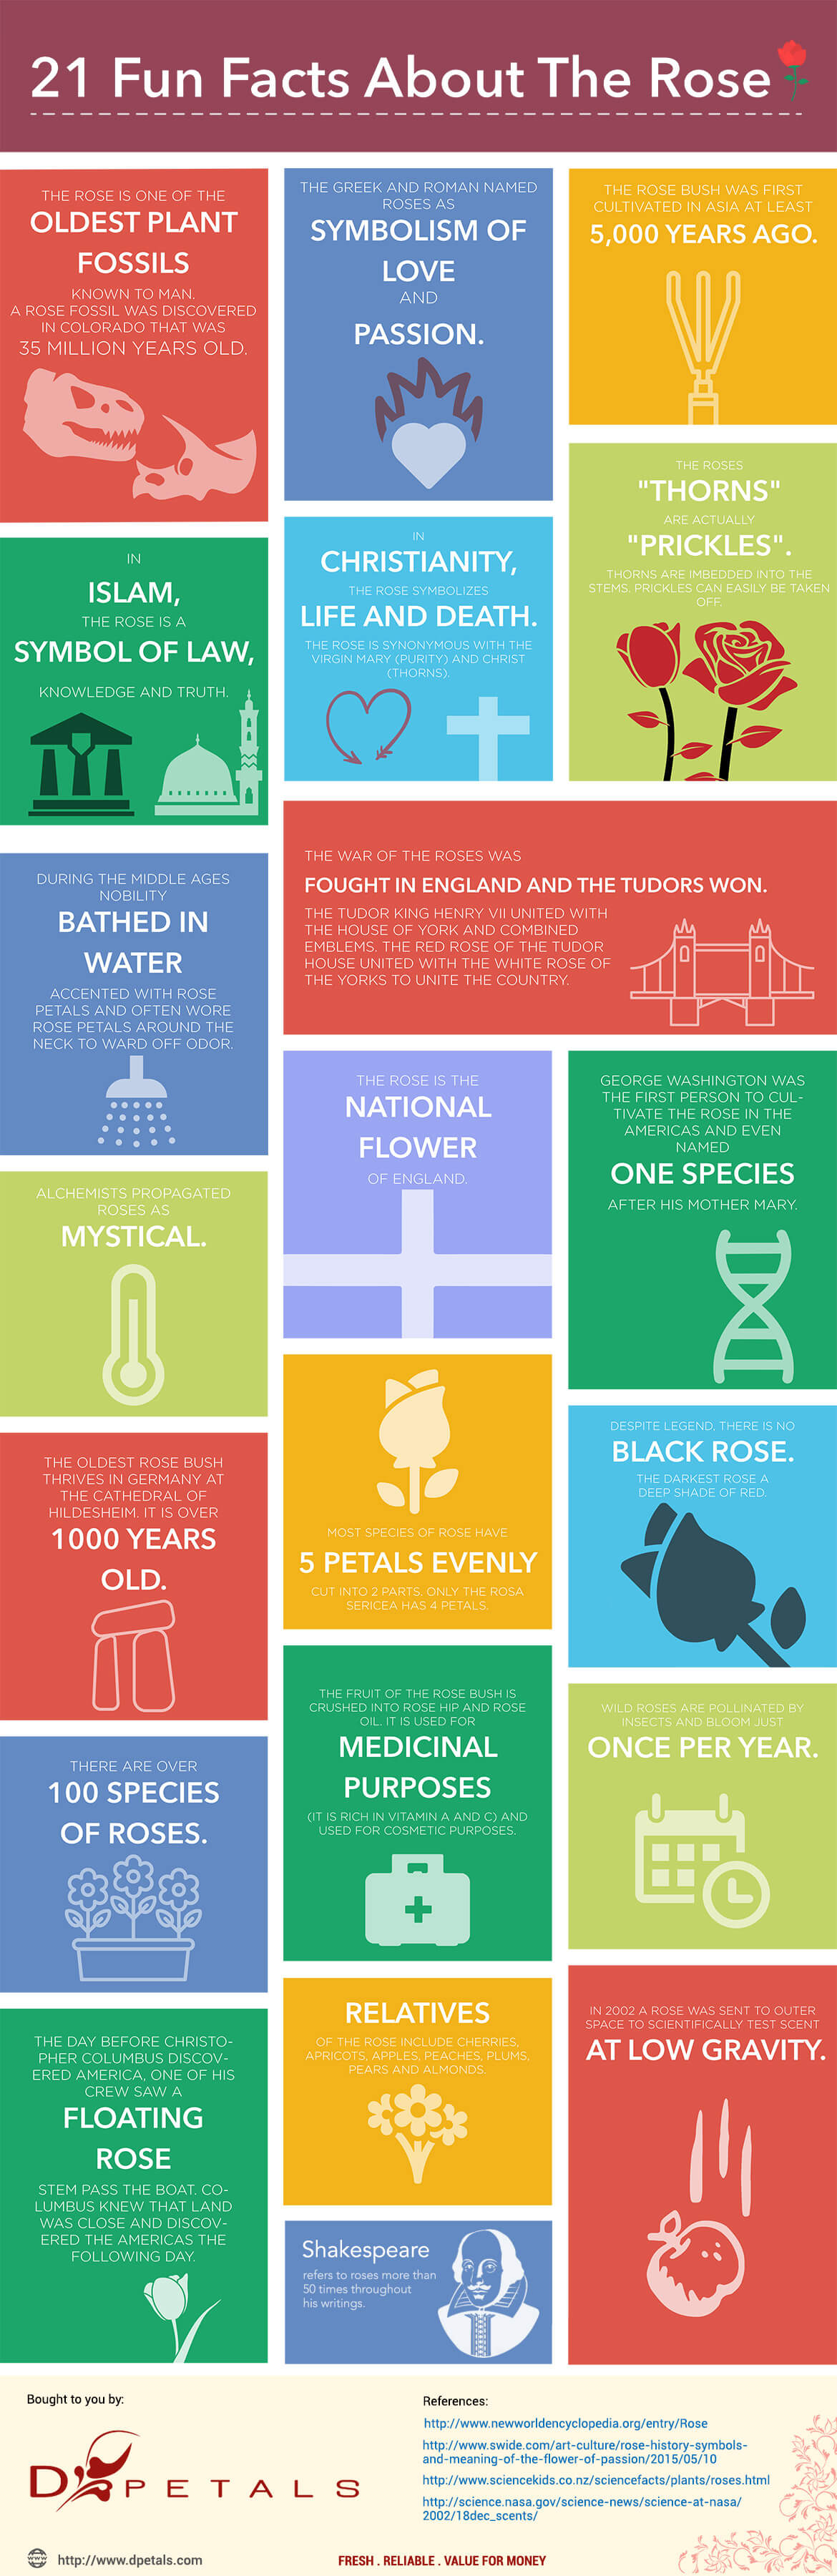 21-fun-facts-rose-infographic